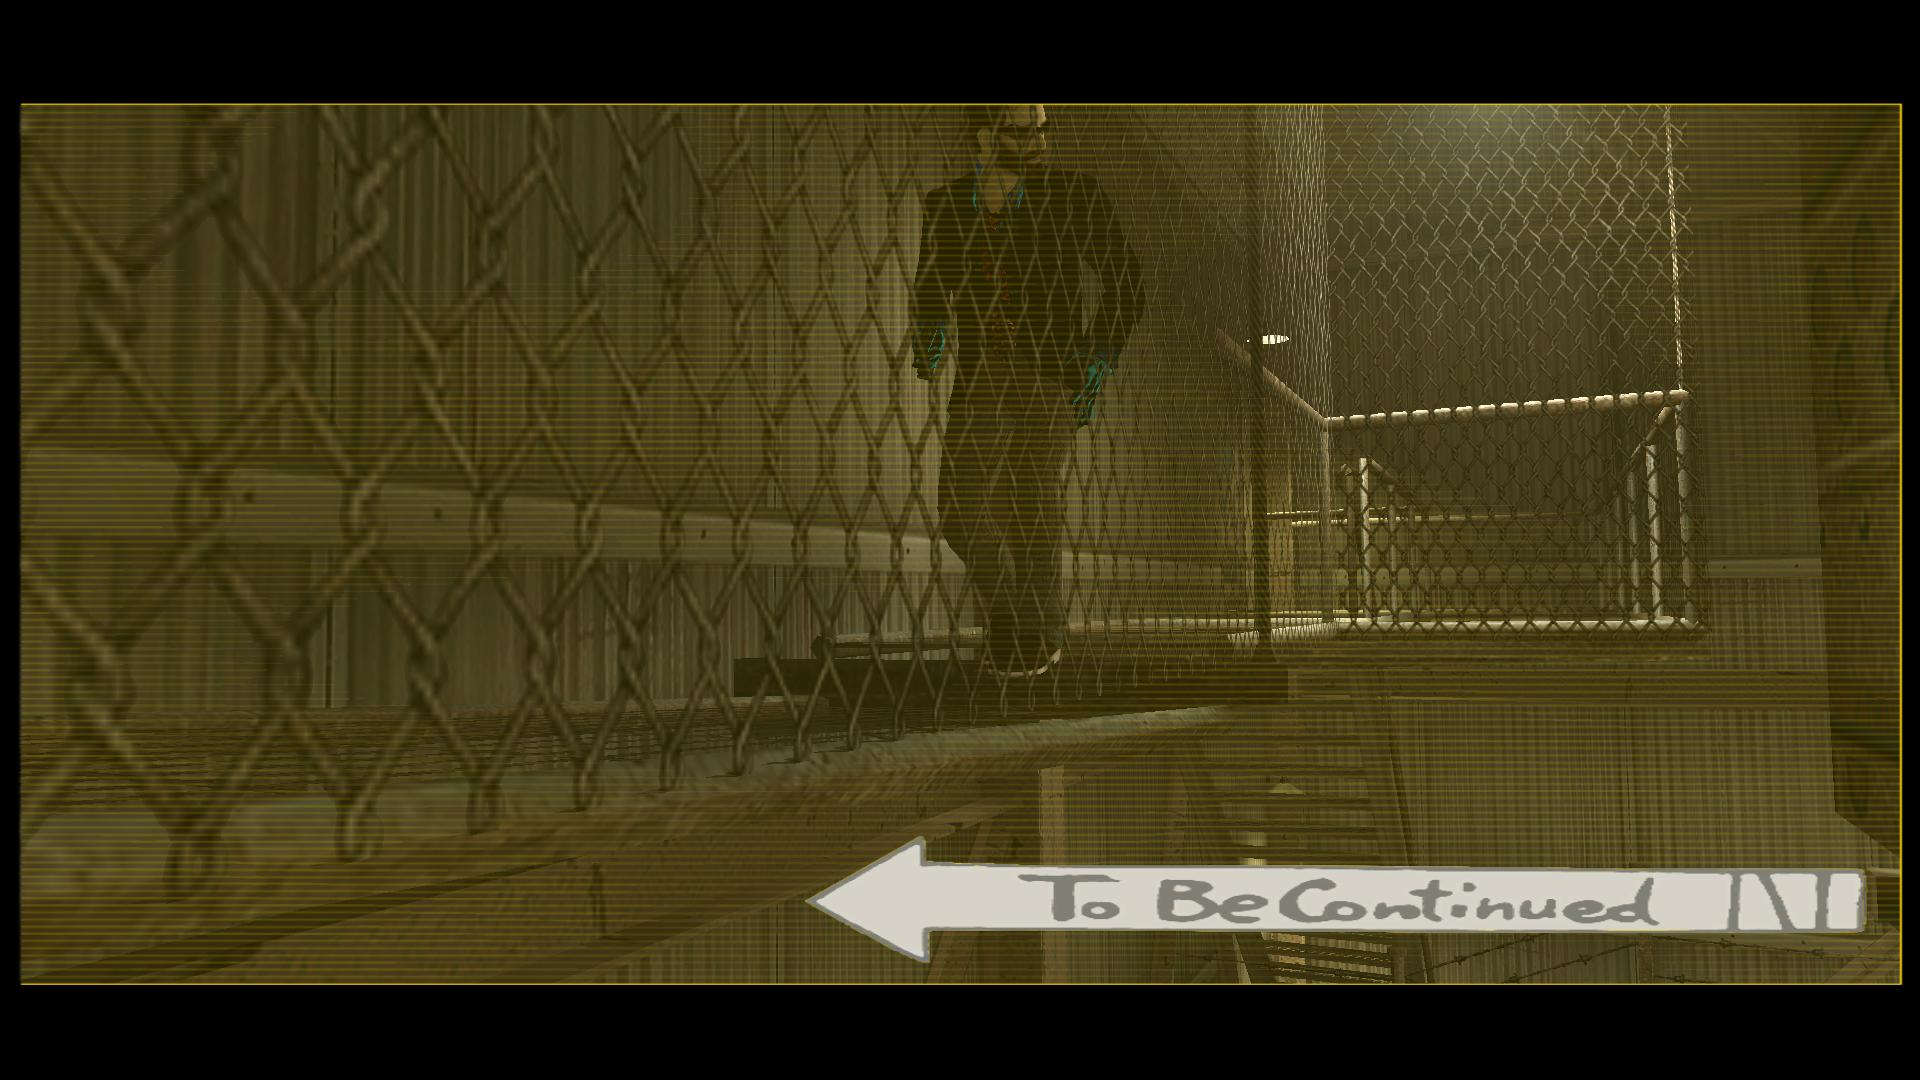 To Be Continued Meme Image Max Payne 2 Revisited Remix